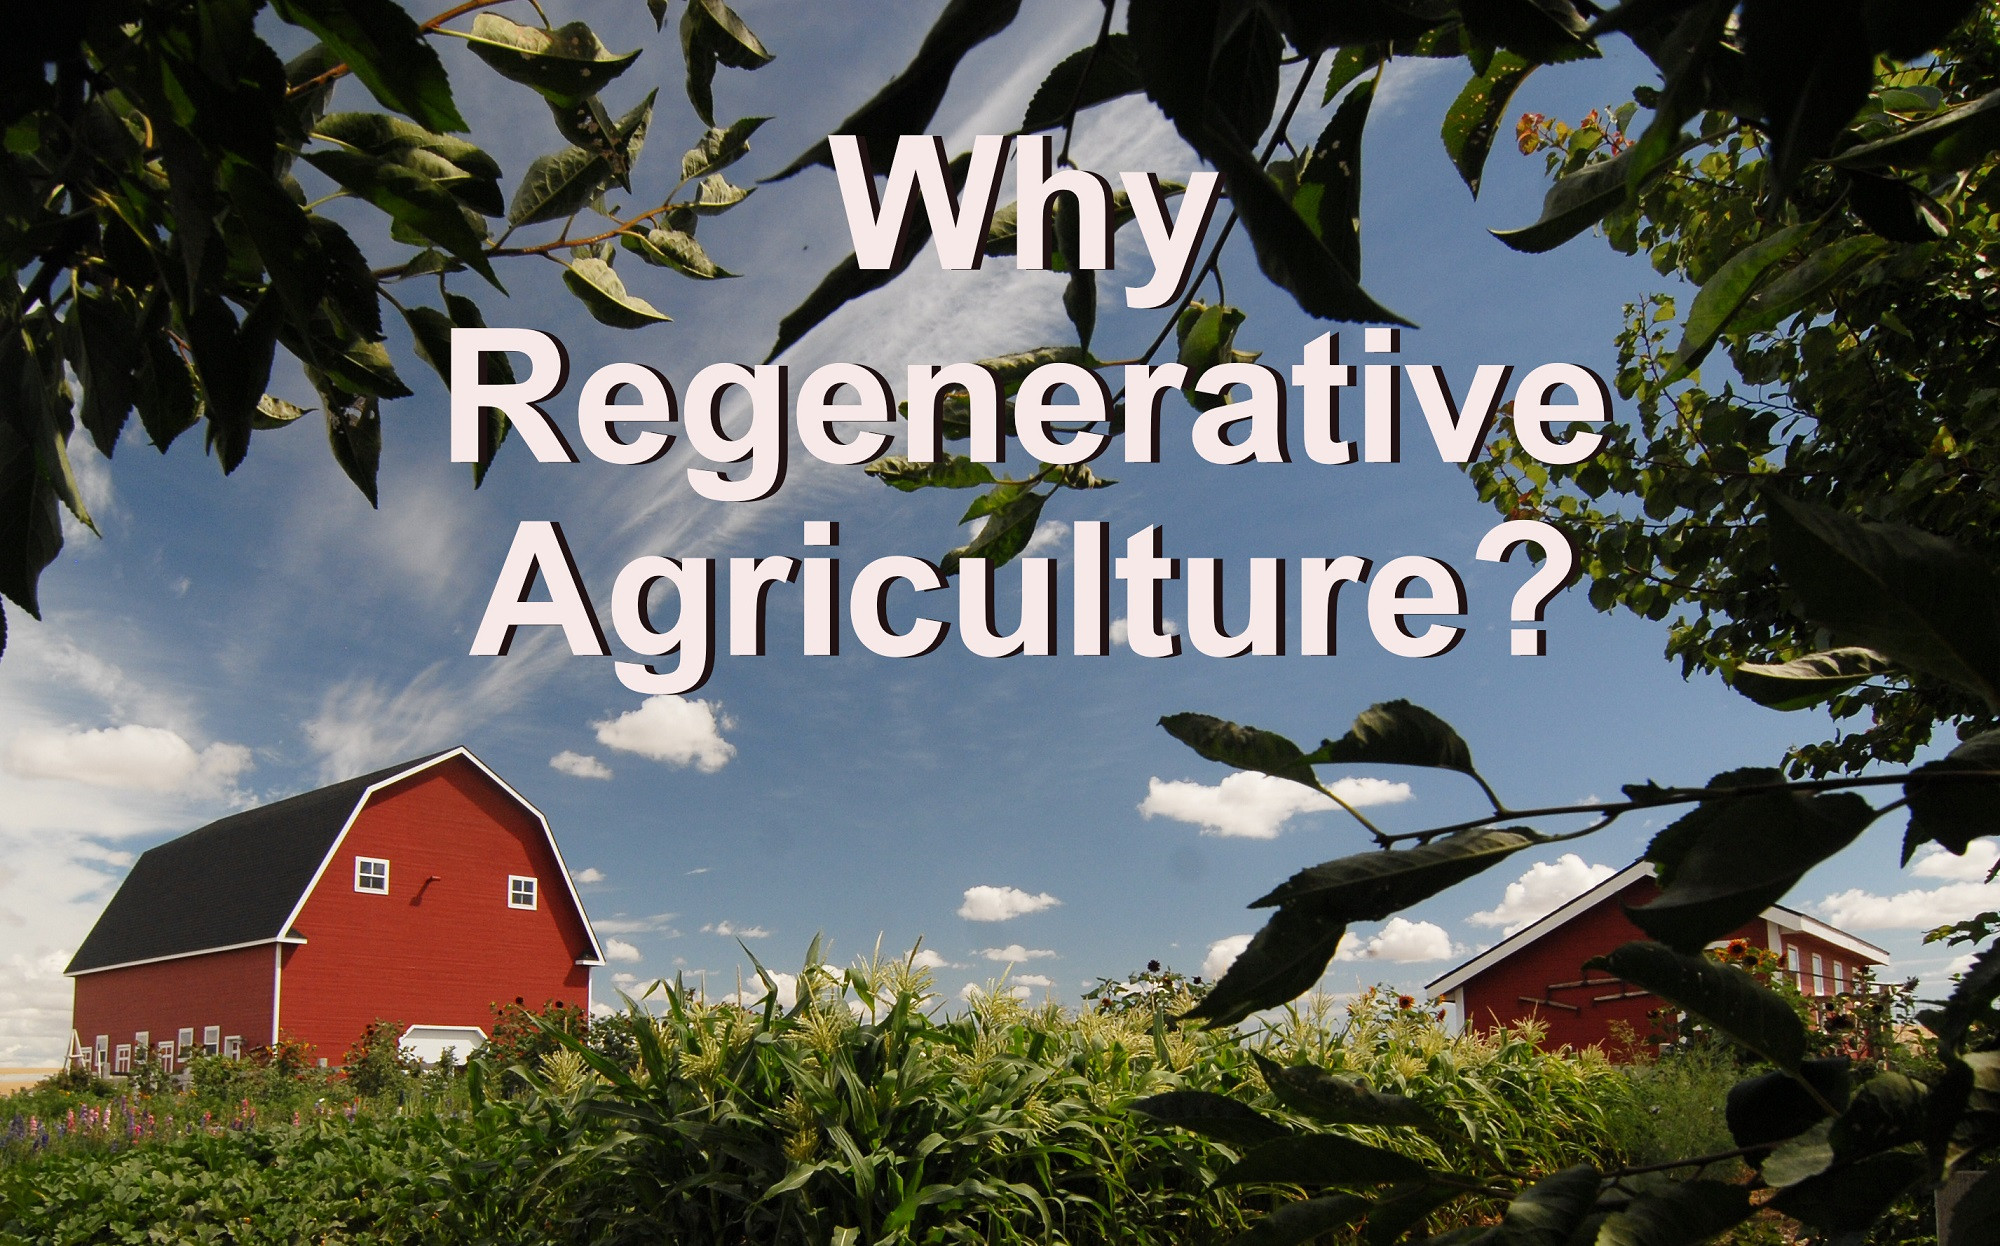 Why Regenerative Agriculture?